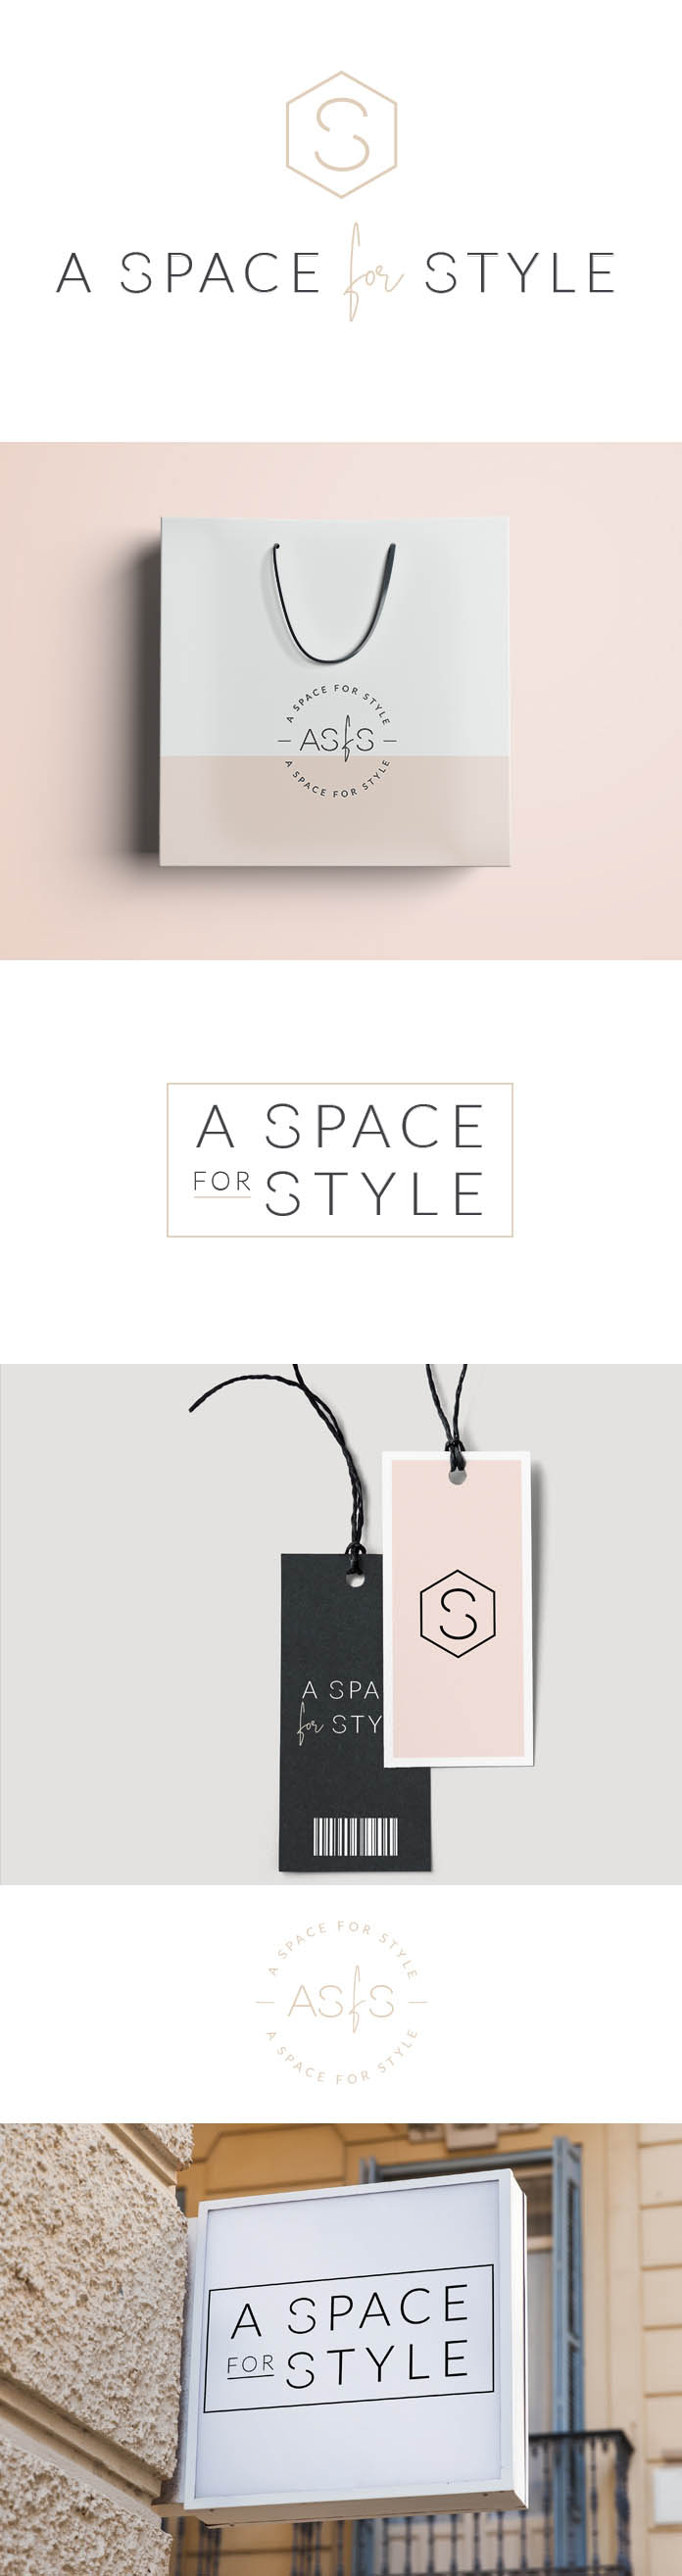 Fashion Logo Design, Branding Kit - monogram, intials logo design, beauty blog brand, handwritten logo, customizable logo